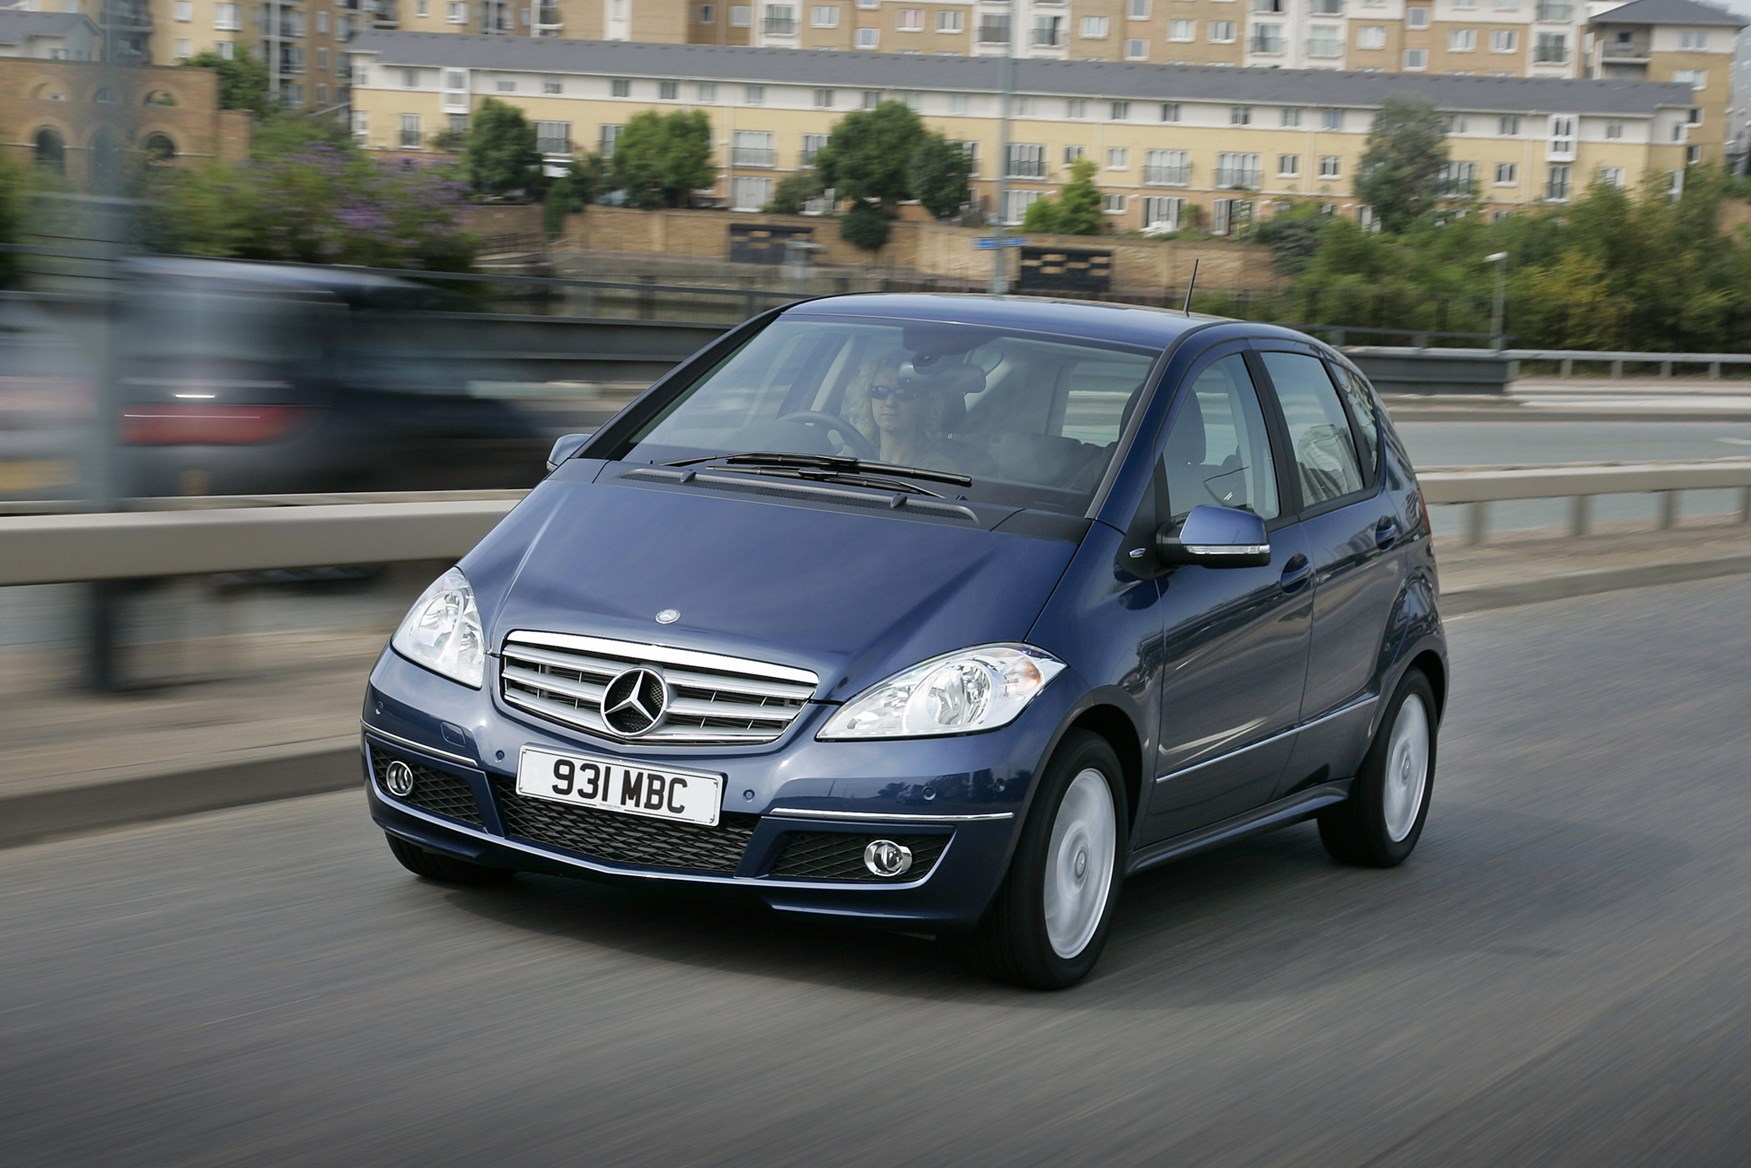 Mercedes benz a class hatchback review 2005 2012 parkers for How much is a new mercedes benz